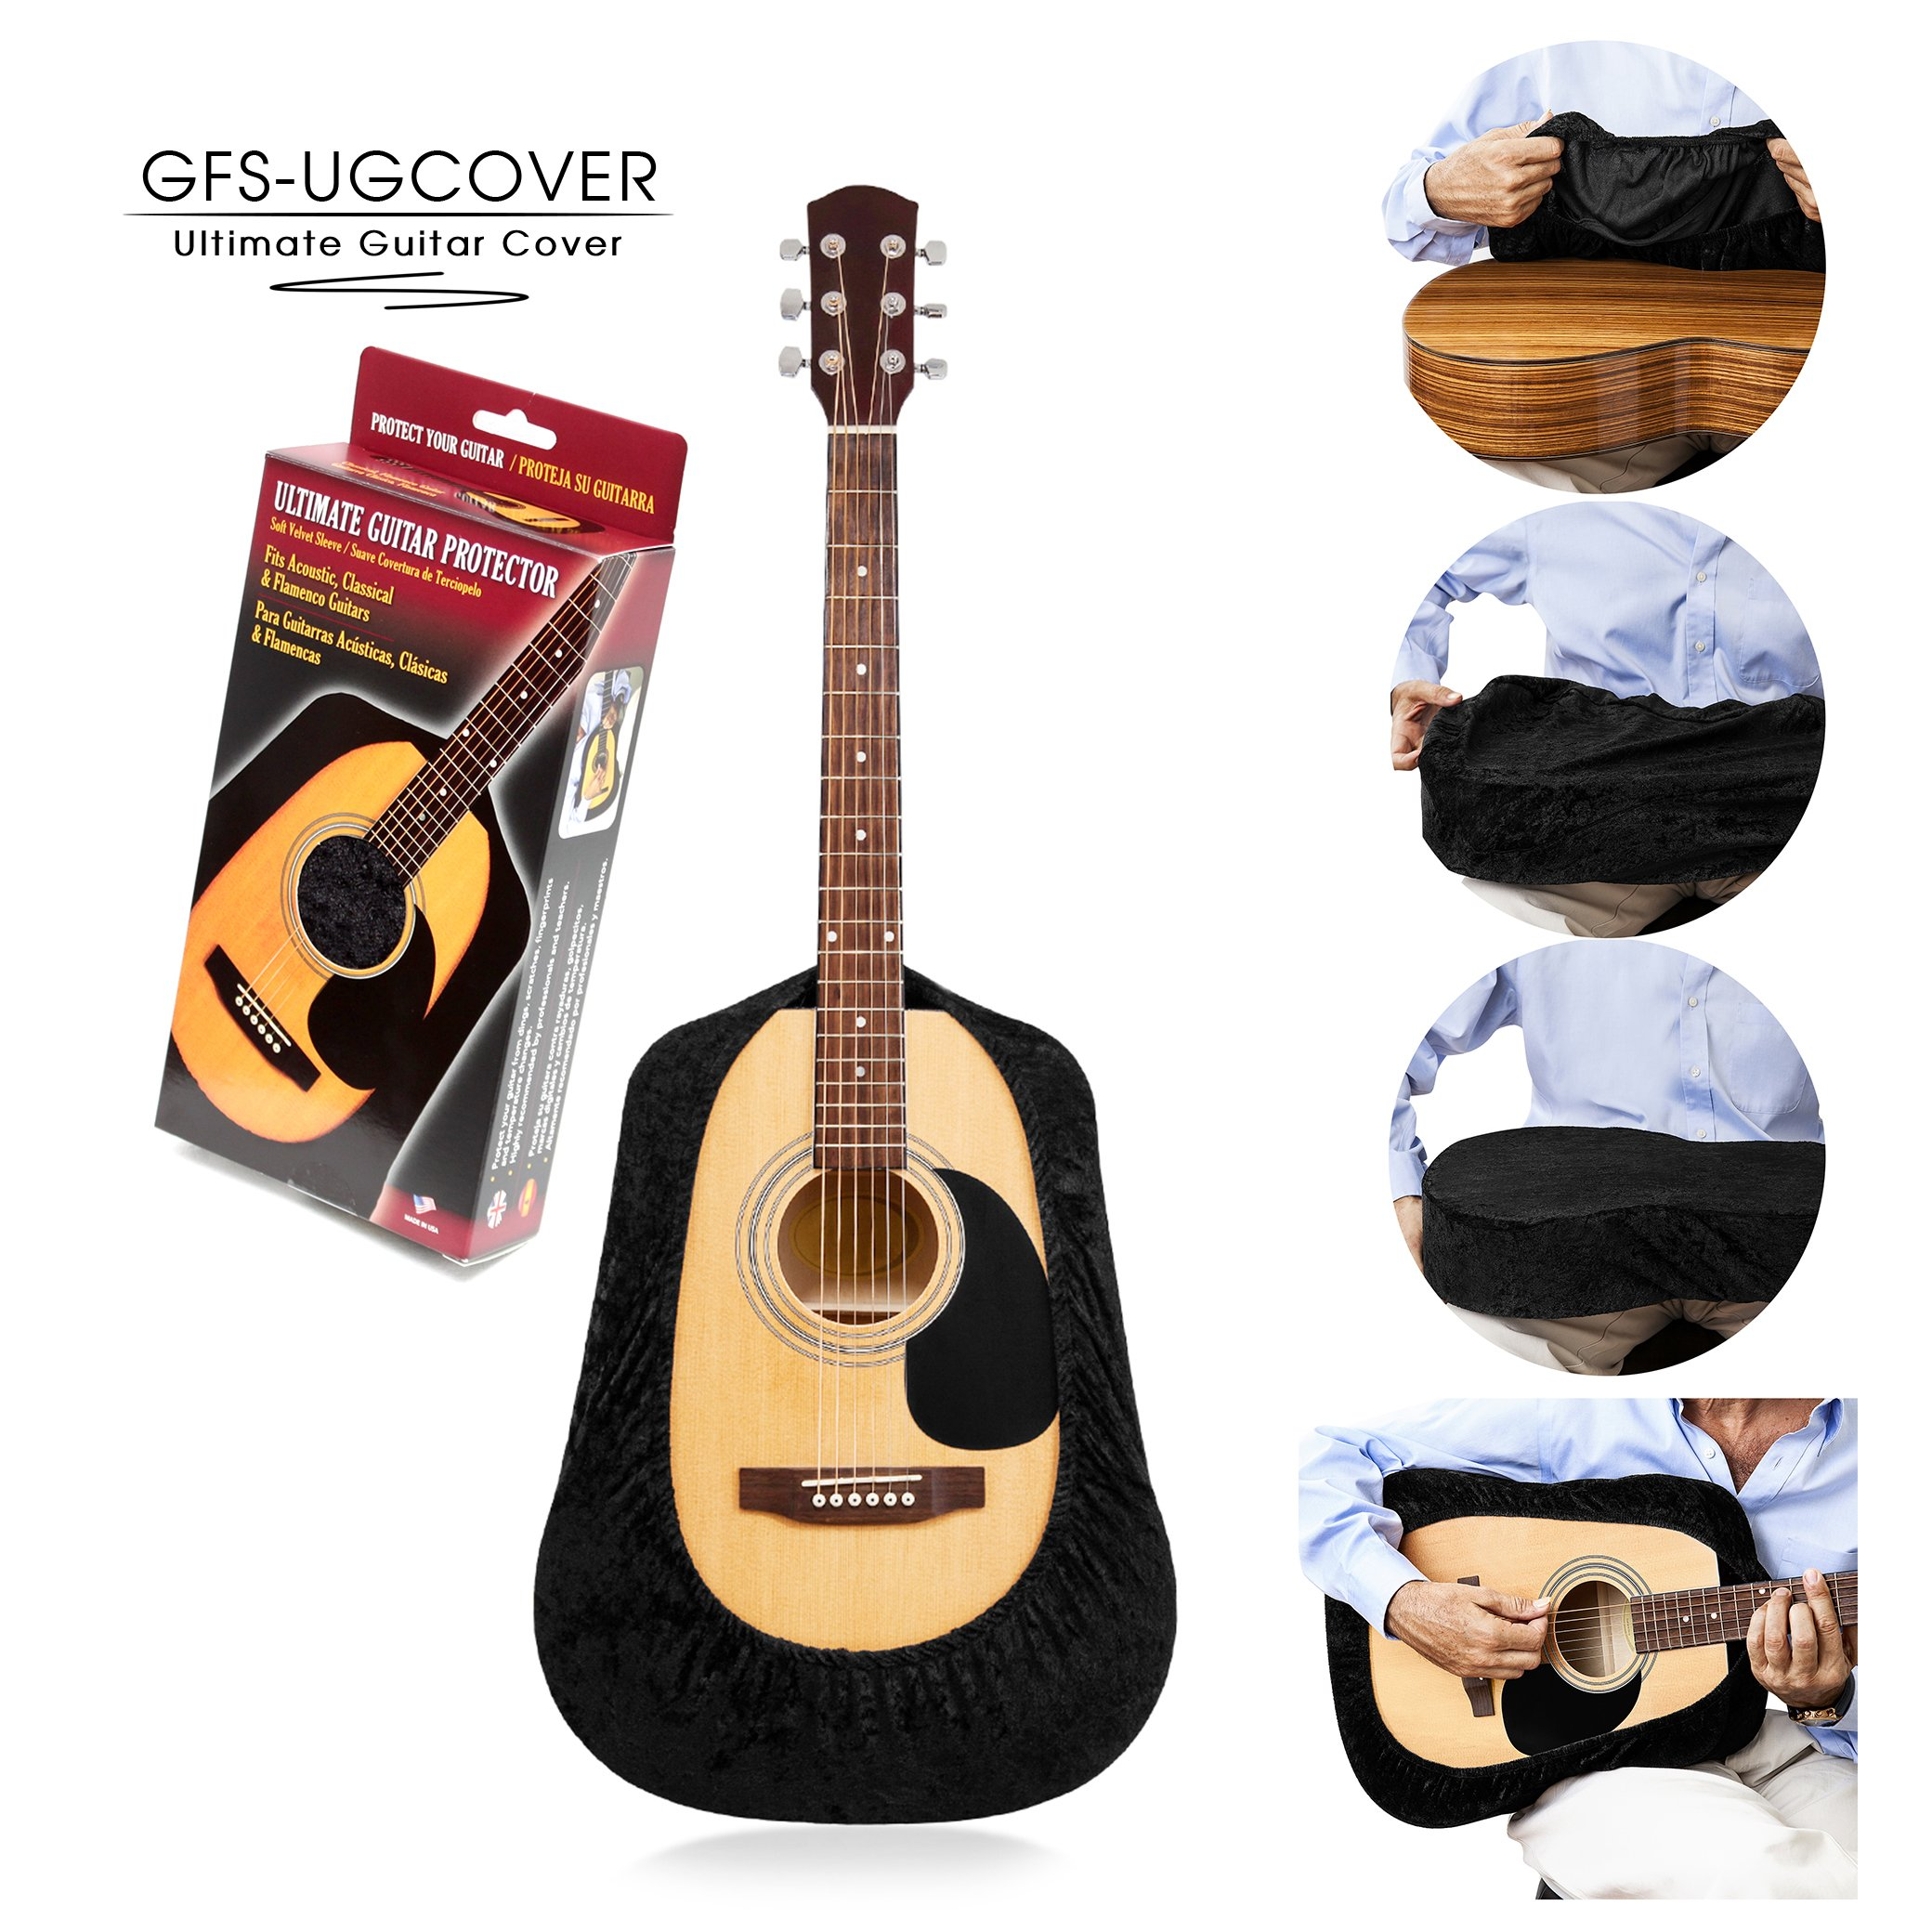 TENOR Ultimate Guitar Cover, Guitar Protector, Guitar Gig Bag, Protective Sleeve for Acoustic, Classical, Flamenco, Arch Top and Cutaway Guitars, Black Velvet Color. Tailor Hand Made.